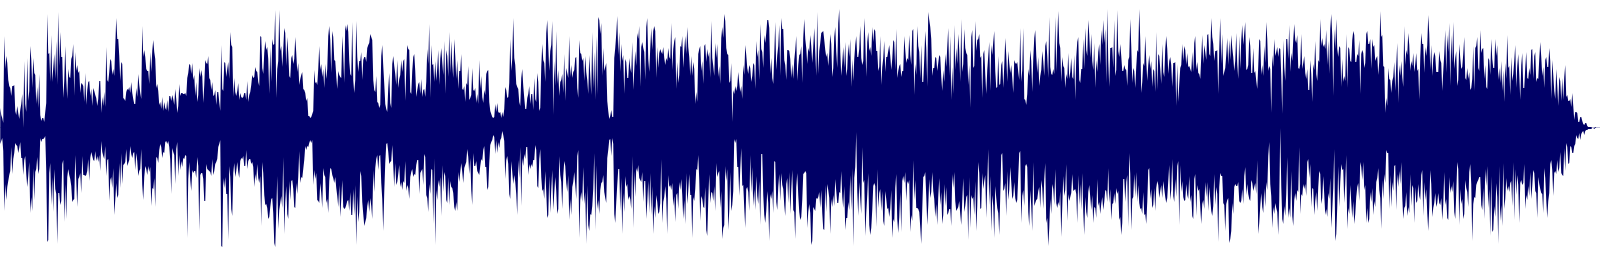 waveform of track #144135